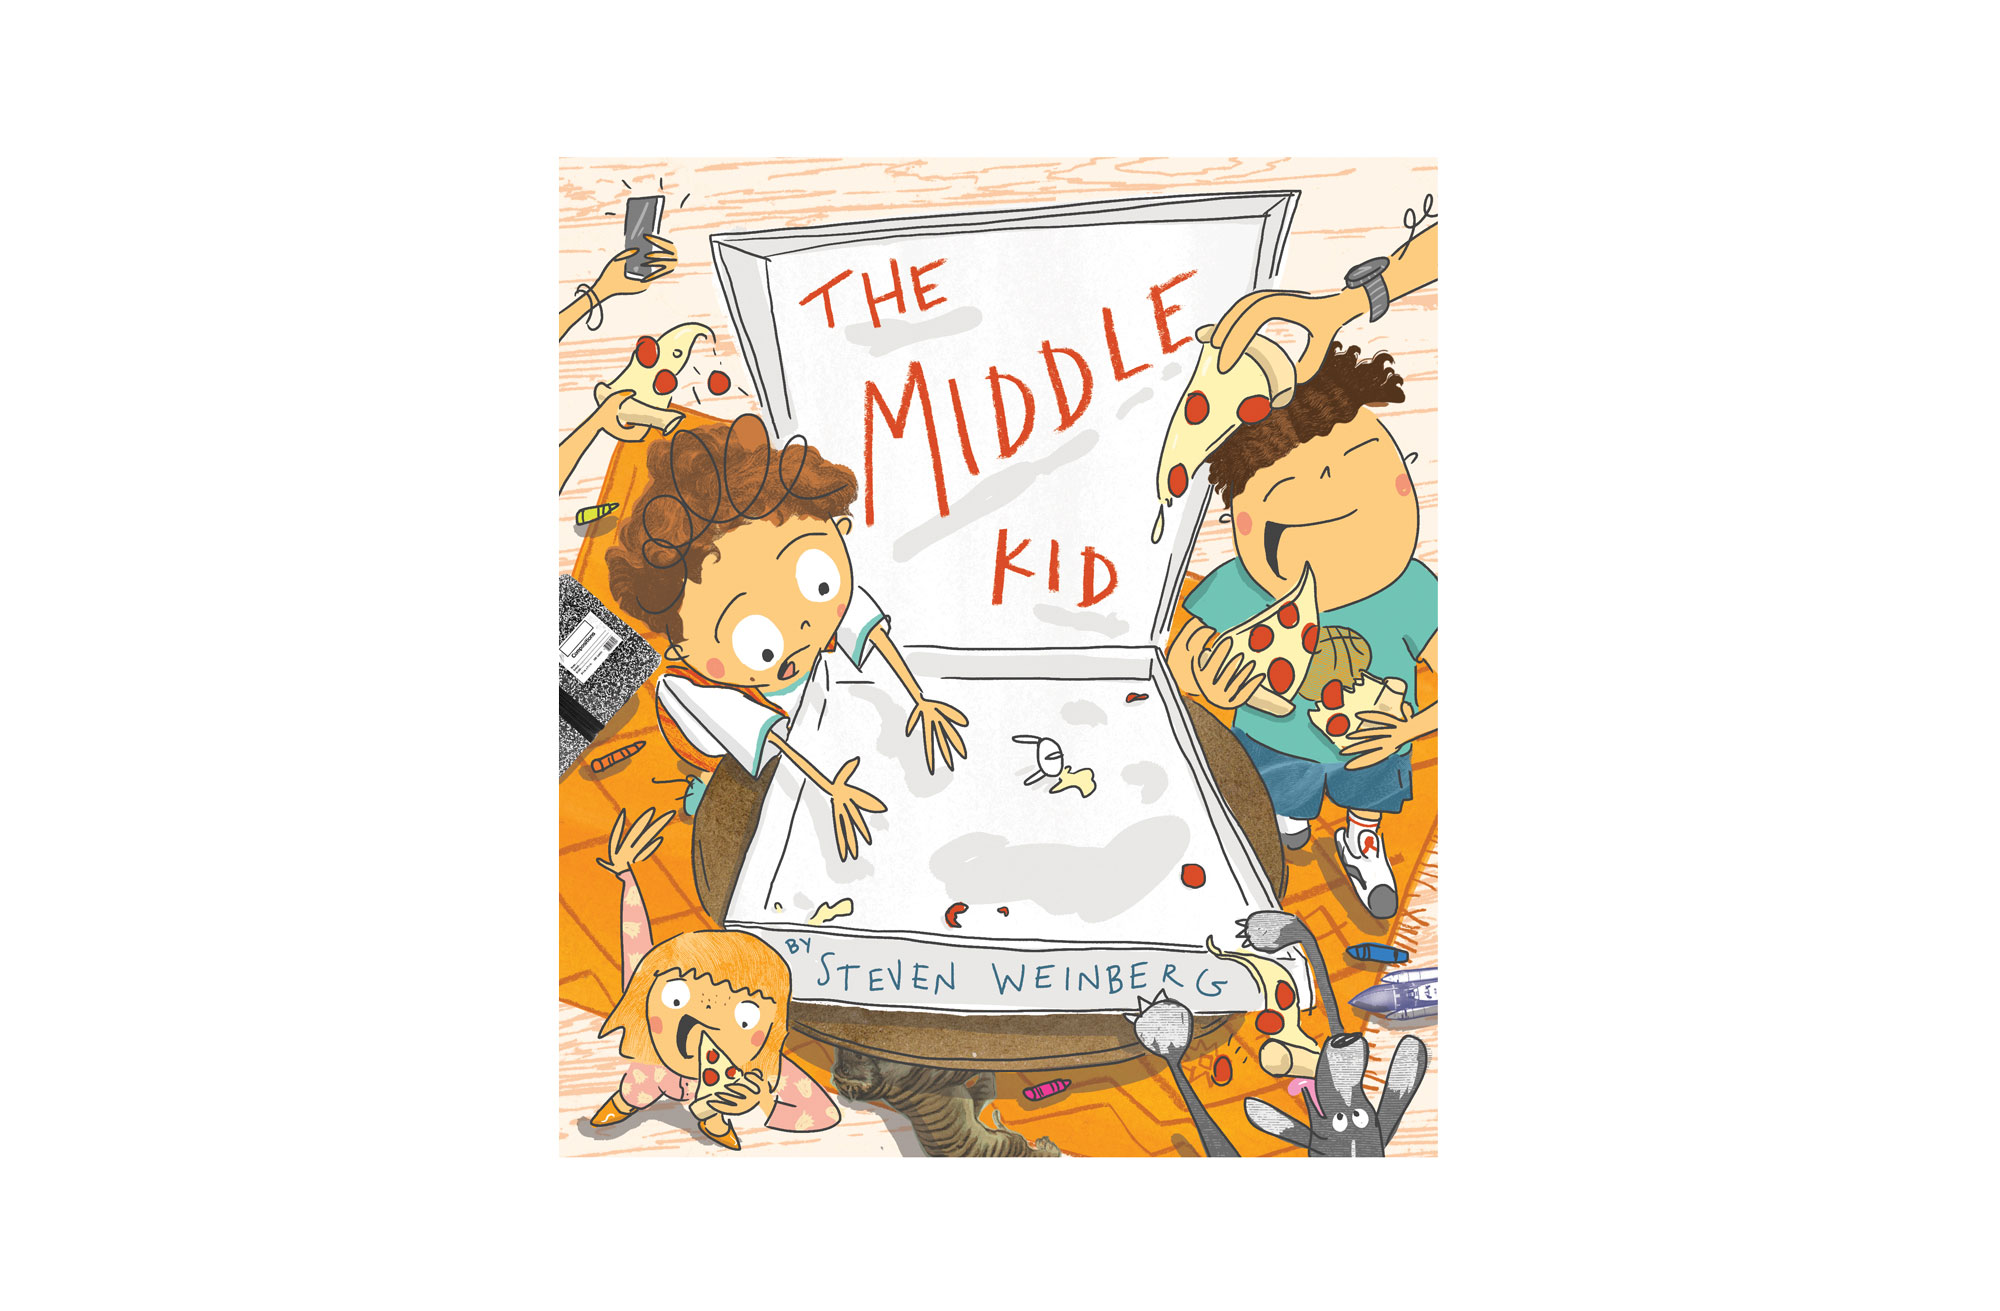 The Middle Kid book cover